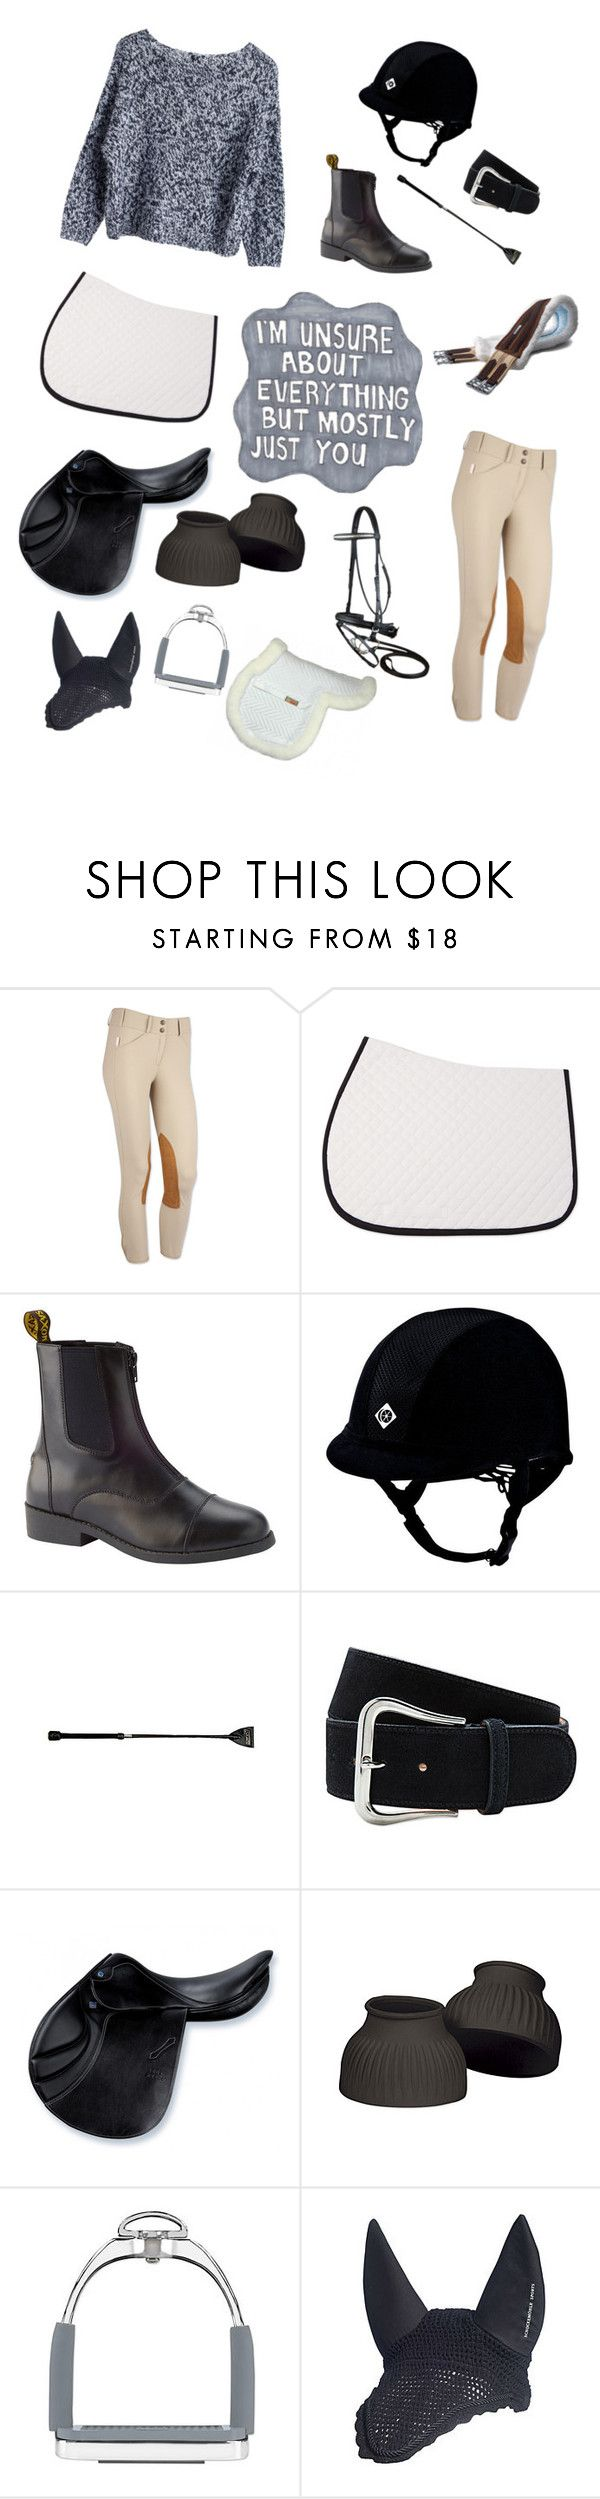 """""""I have the shirt and the pants soooo"""" by kylieirwin11 ❤ liked on Polyvore featuring MTWTFSS Weekday, Sharpie and Coolmax"""